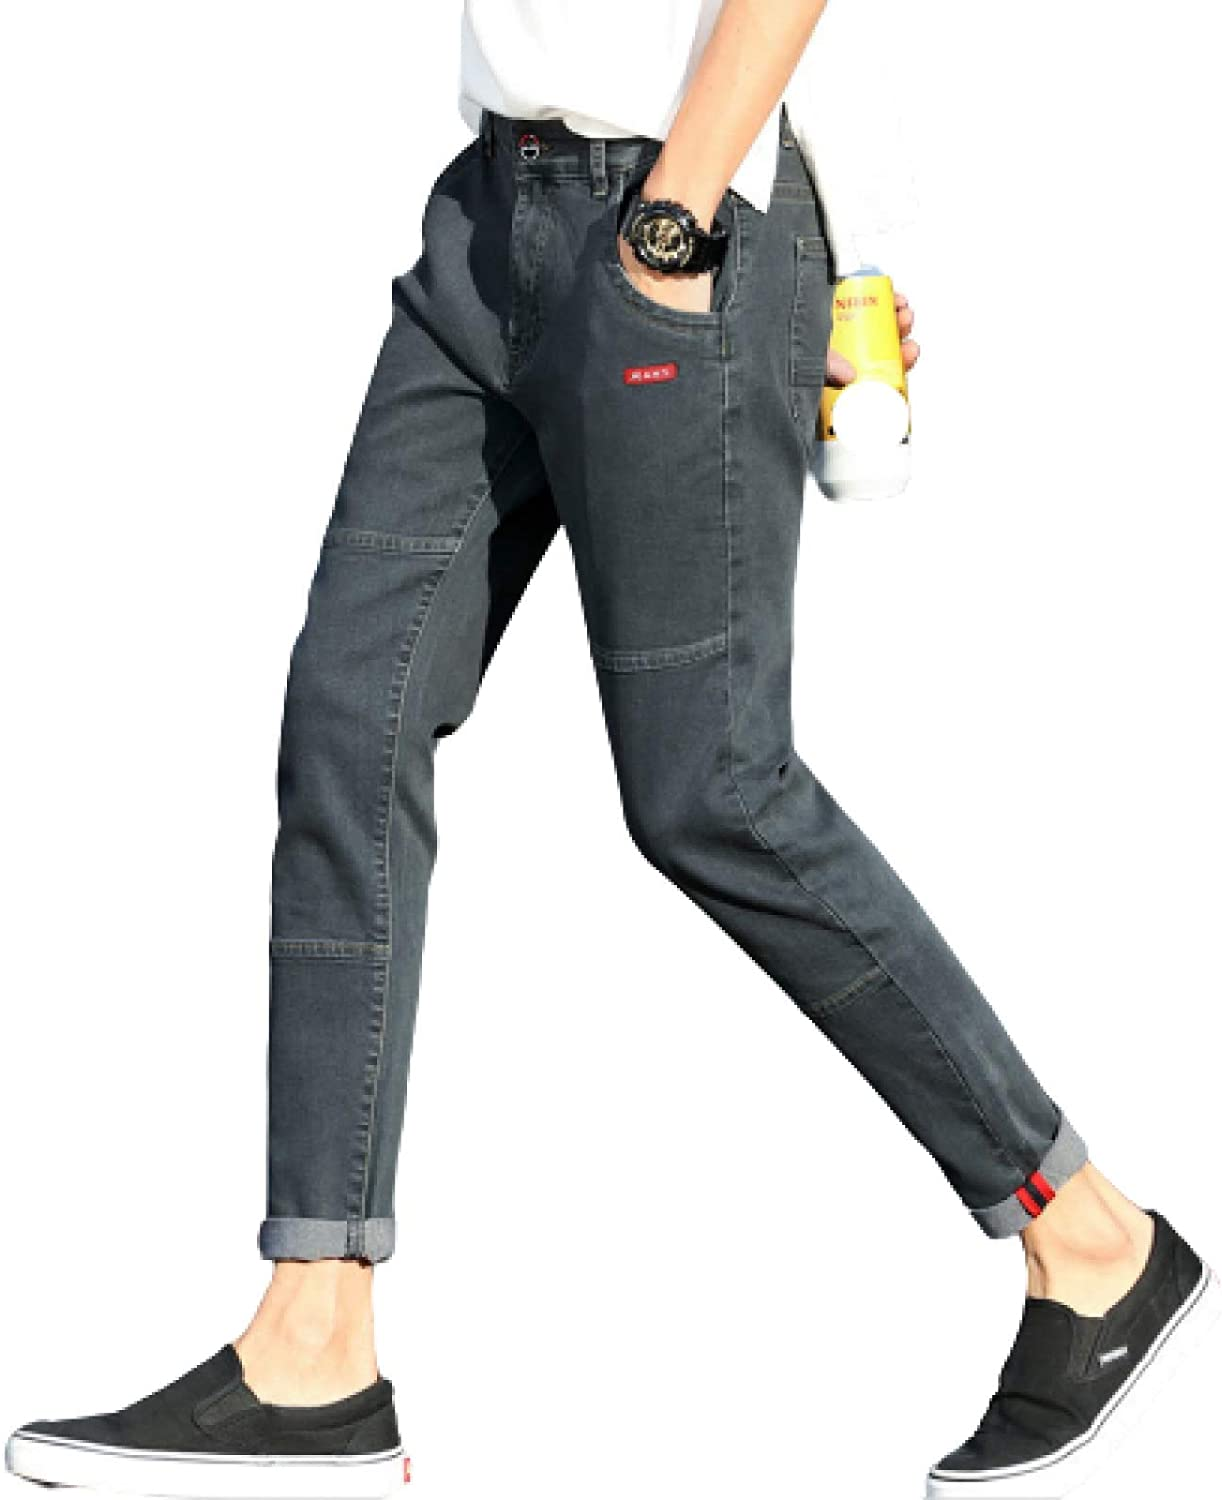 Wantess Max 76% 4 years warranty OFF Men's Fashion Jeans PatchworkStitching Large Taper Size